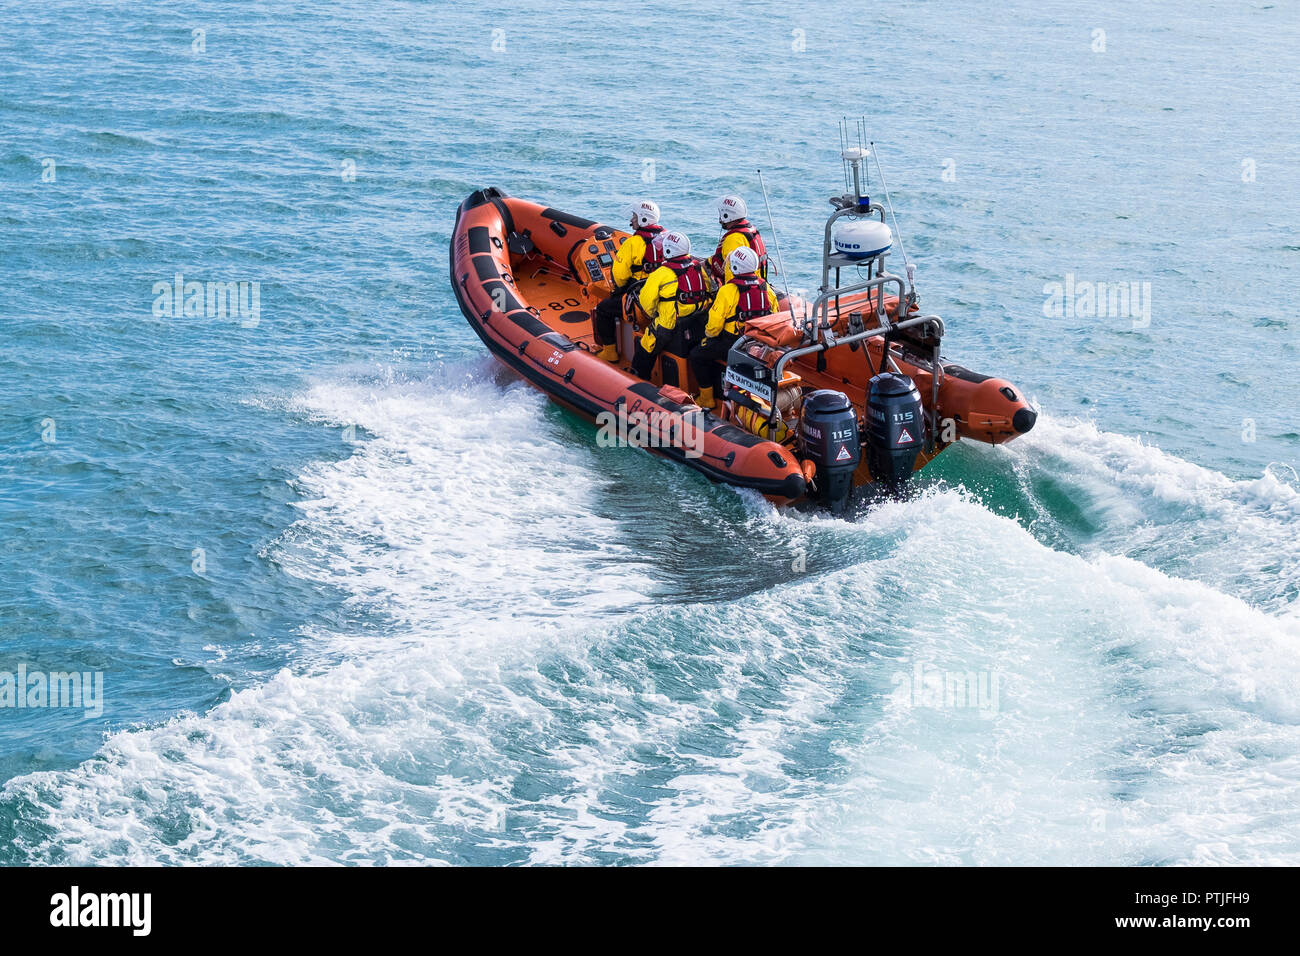 Volunteers of the Newquay RNLI crew participating in a GMICE Good Medicine in Challenging Environments major incident exercise in Newquay in Cornwall. - Stock Image